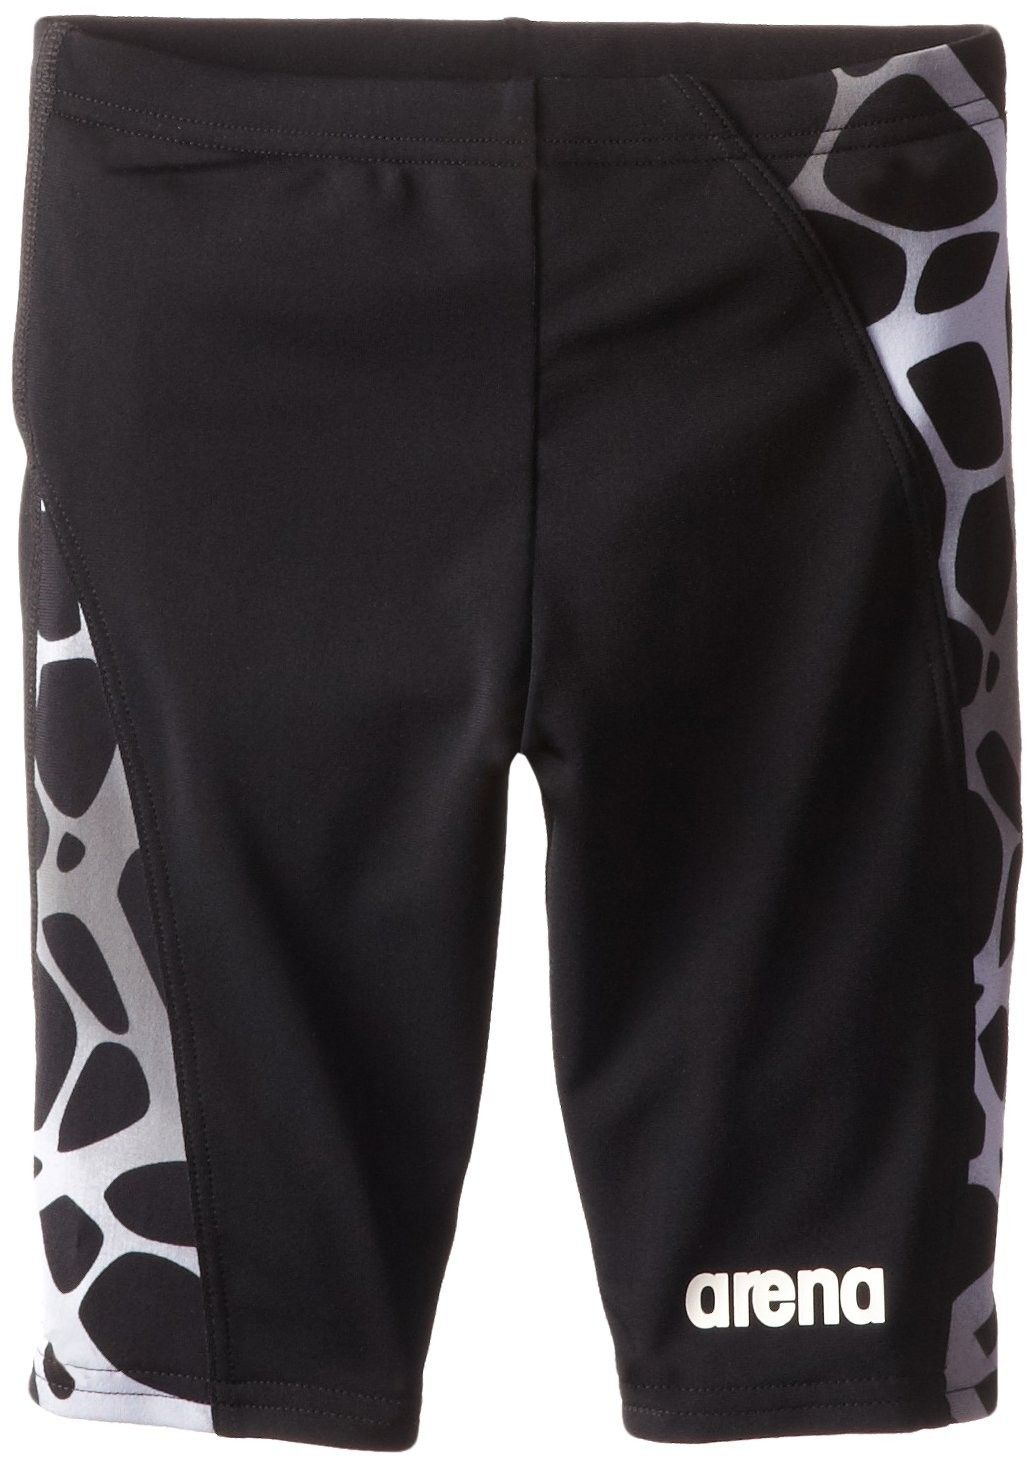 Boys Carbonite Jammer - Black/Asphalt/White - C111SAVQ551 - Sports & Fitness Clothing, Boys, Swimwea...